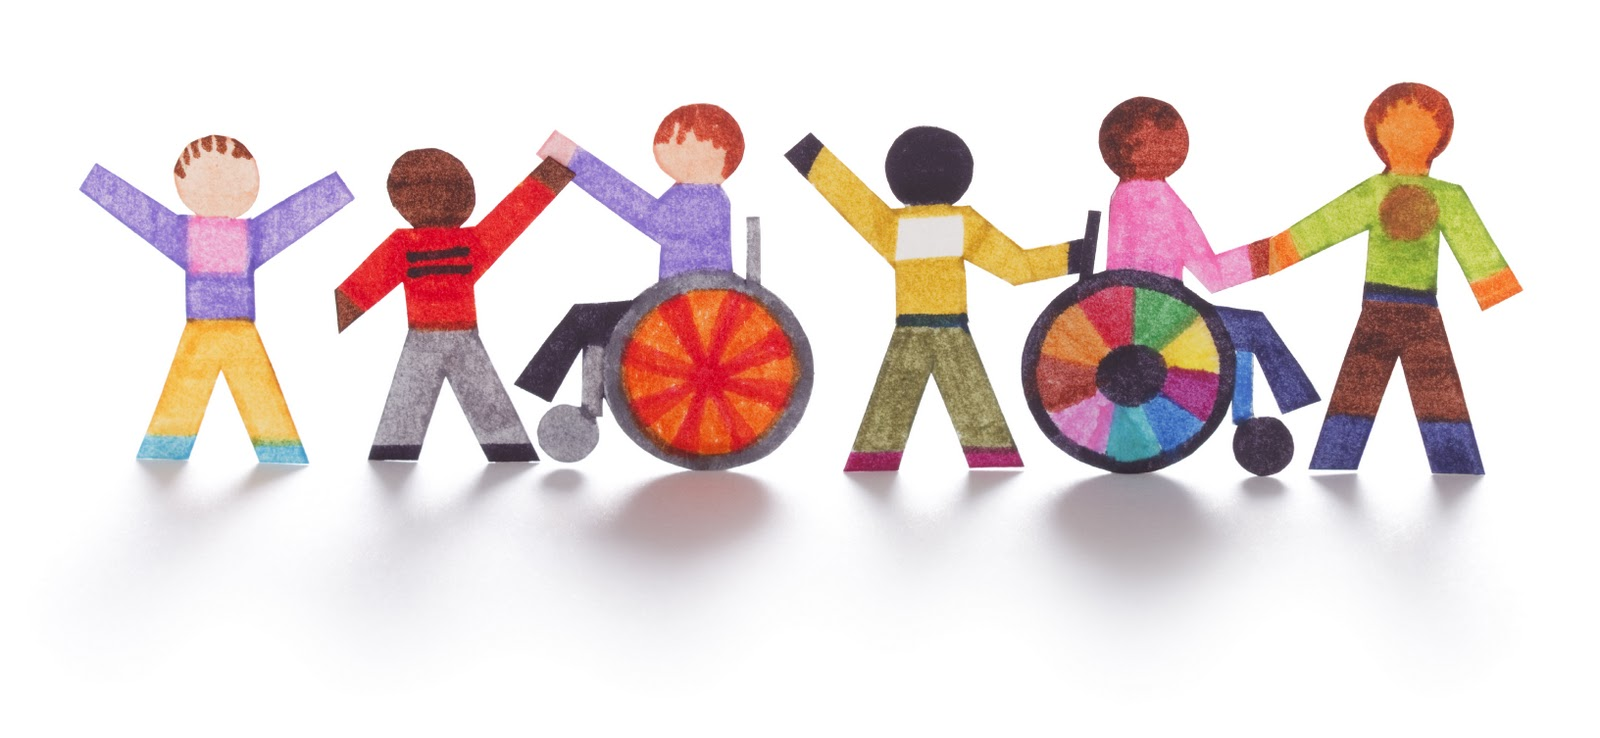 Spaces for Children with Special Needs.